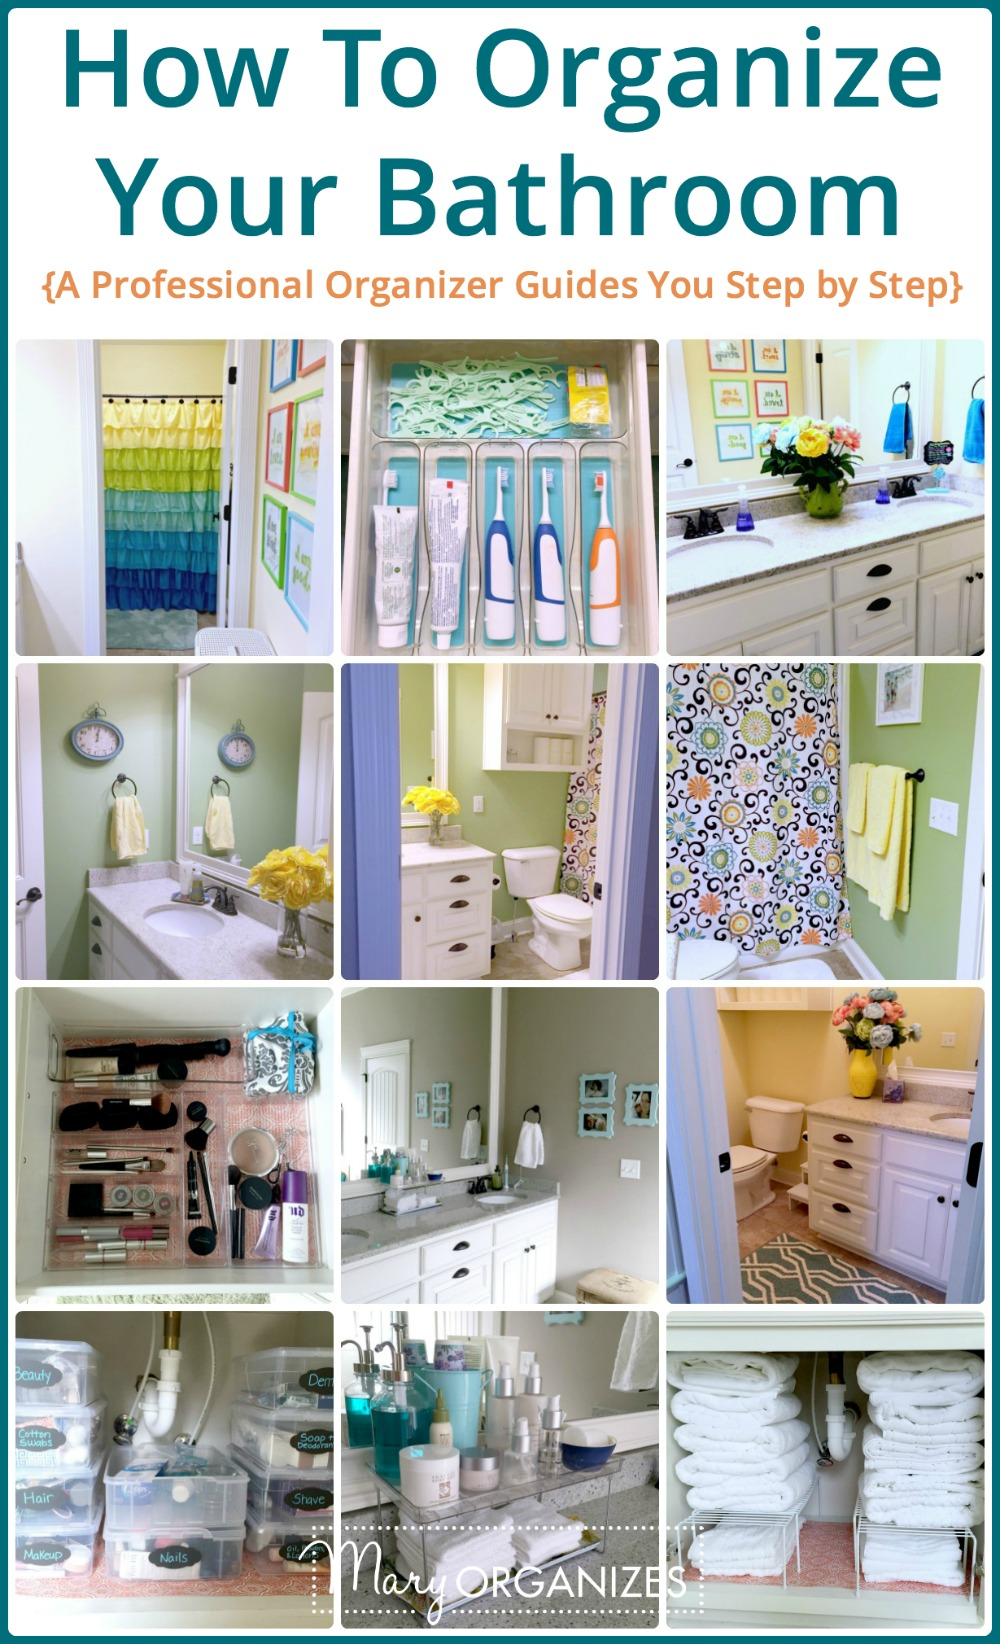 How To Organize Your Bathroom -v